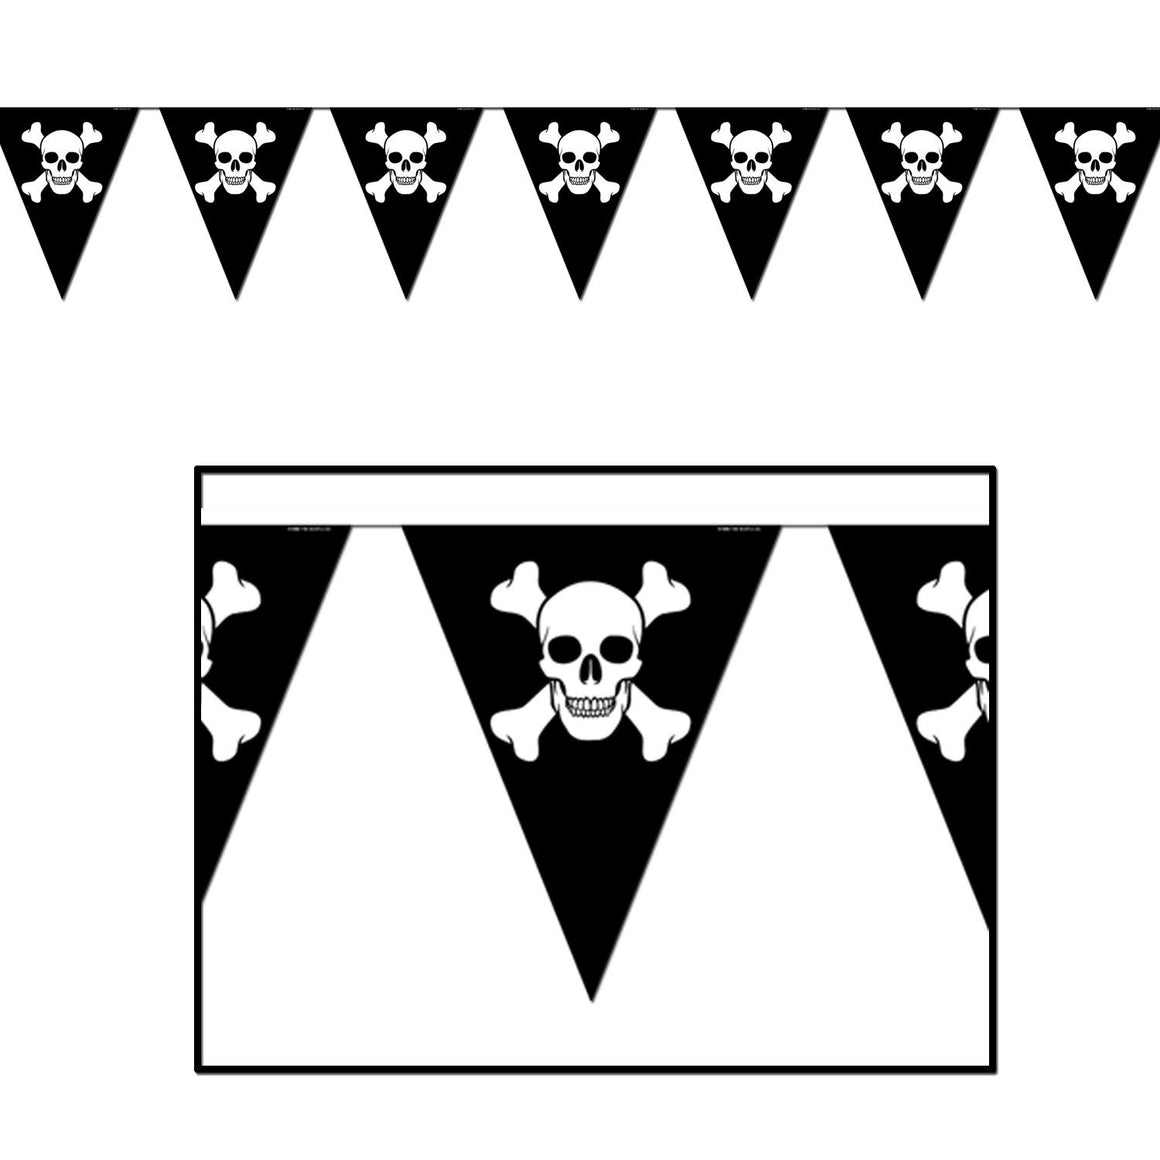 BANNER - PENNANT JOLLY ROGER PIRATE, BANNER, SKS - Beistle Co - Bon + Co. Party Studio